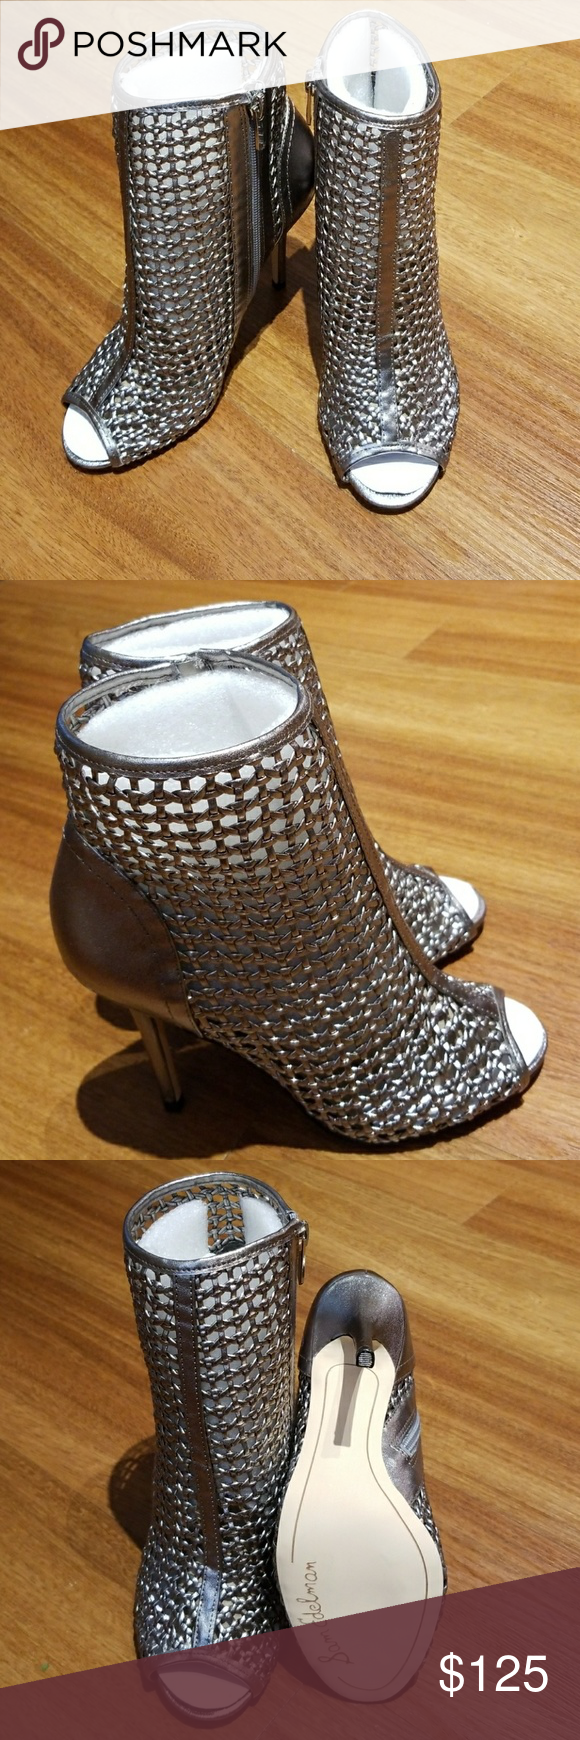 2bb00212a Sam Edelman Pewter caged peep toe bootie! NEW WITH TAGS!! Sold out  everywhere